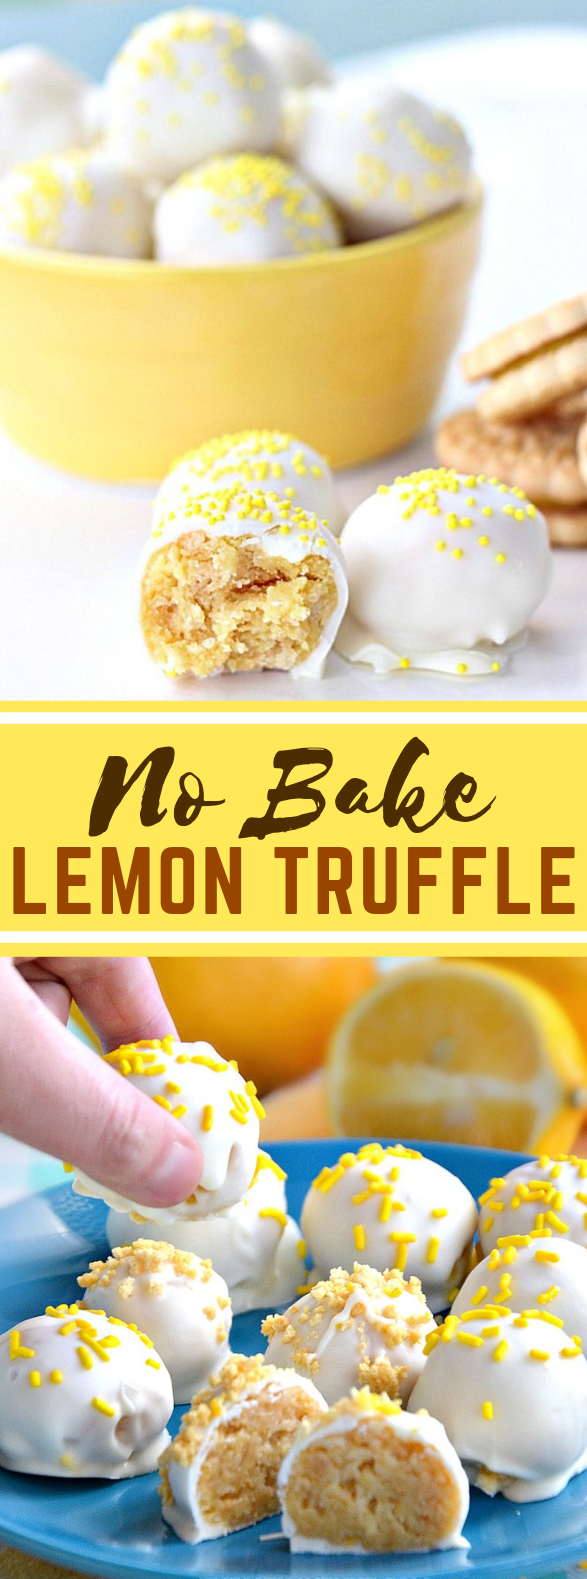 NO BAKE LEMON TRUFFLE RECIPE #desserts #summer